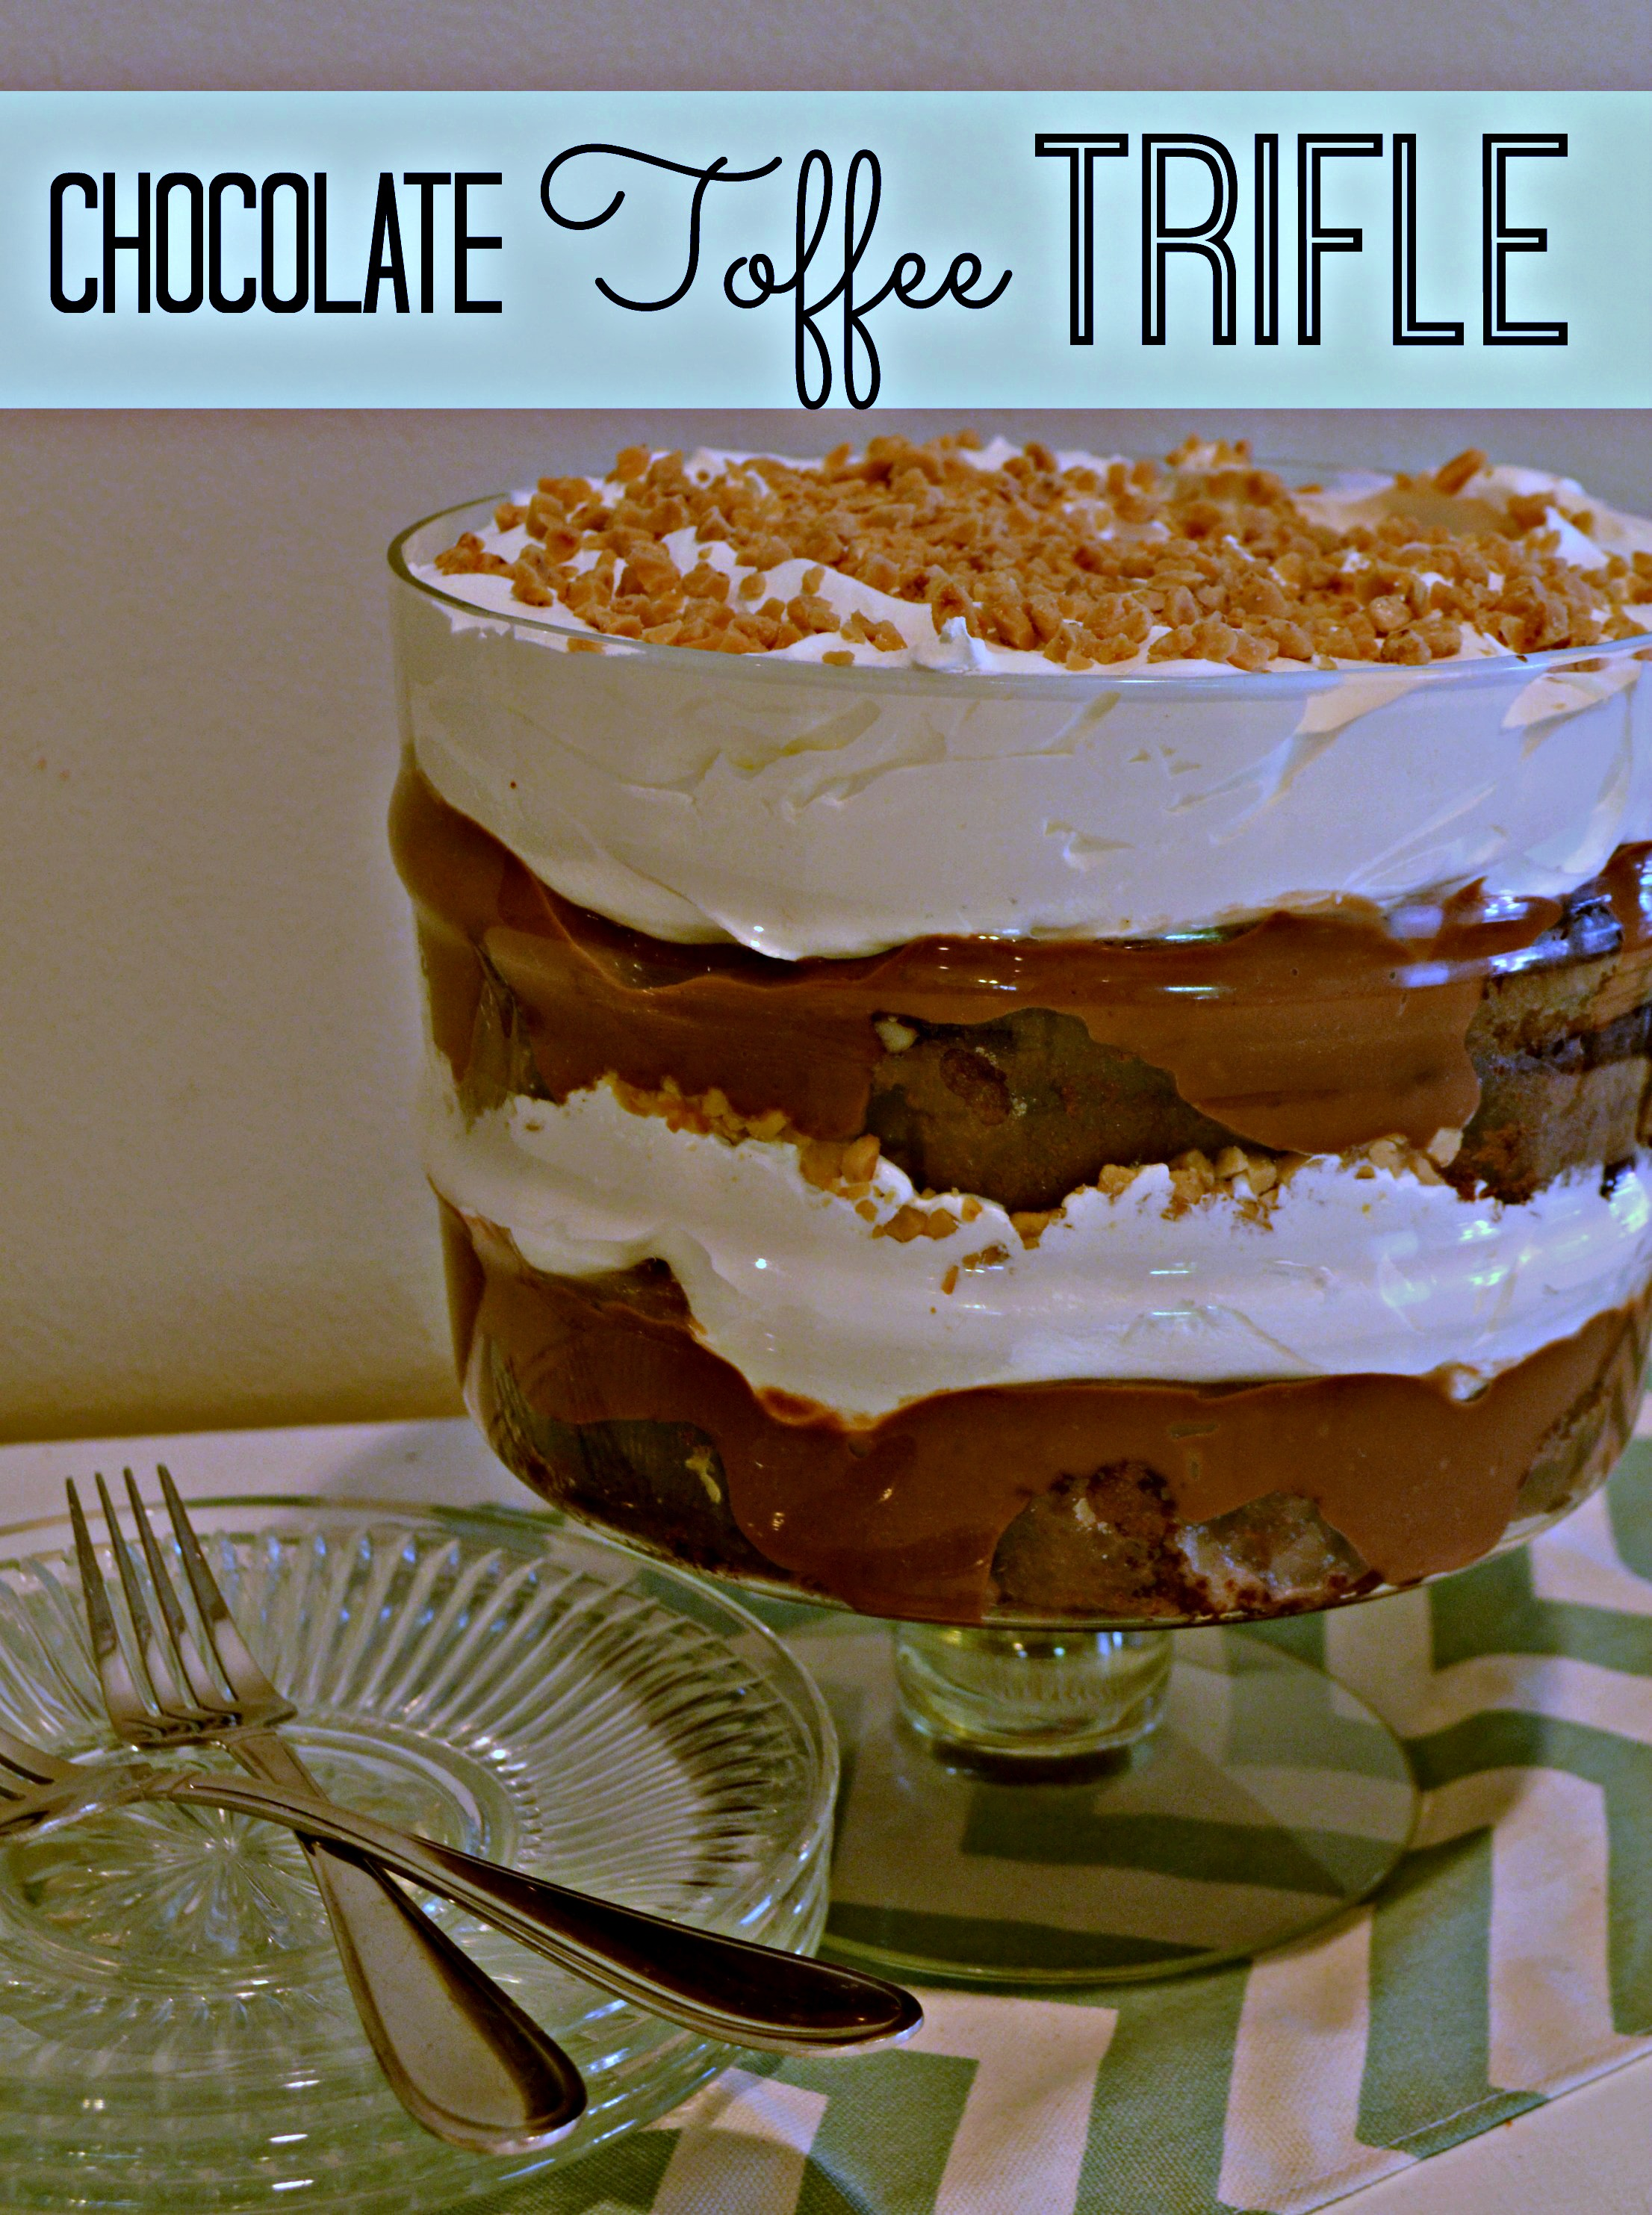 Chocolate-Toffee-Trifle1